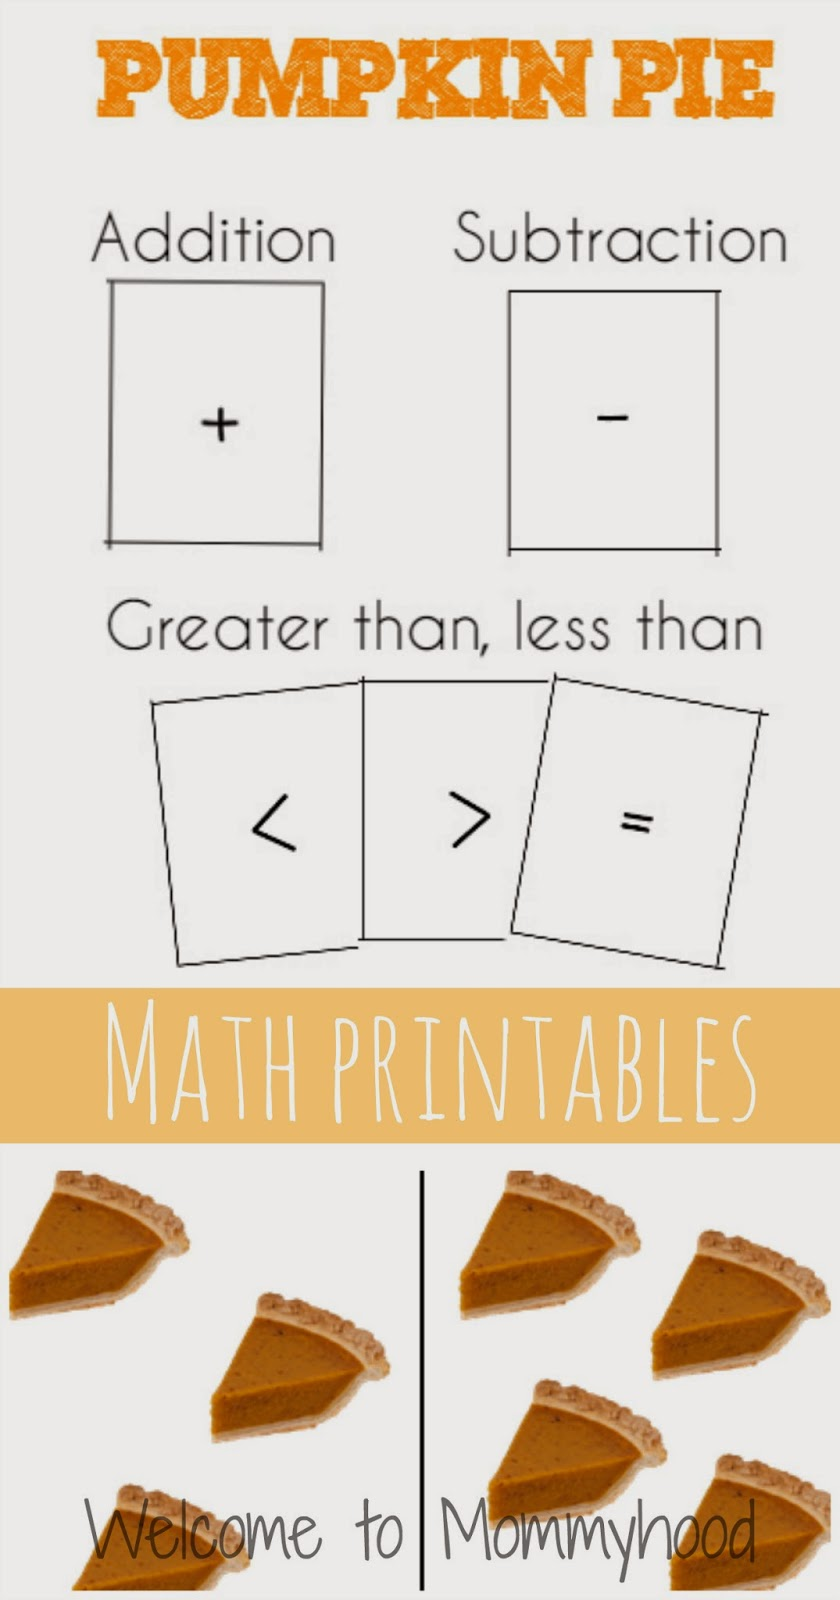 Thanksgiving Activities: Pumpkin Pie Counters! These are great for toddlers, pre-schoolers, kindergarteners and even older children! These free printables include pumpkin pie counters, addition, subtraction, greater than/less than cards, and more! {Welcome to Mommyhood} #thanksgivingactivities, #montessori